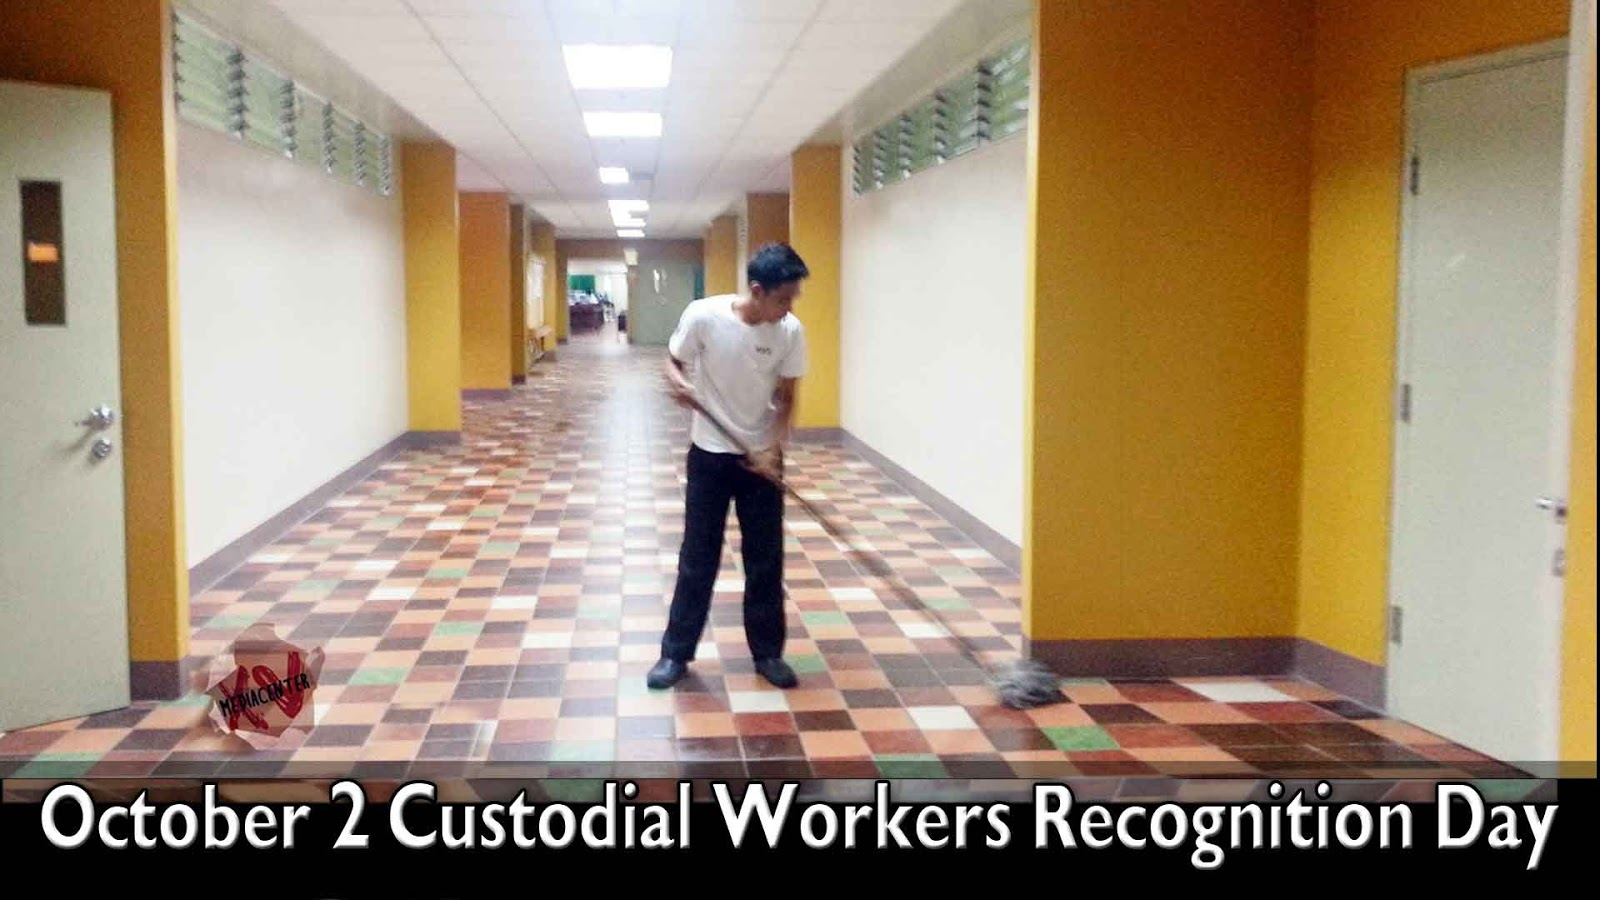 2 custodial workers recognition day today day info